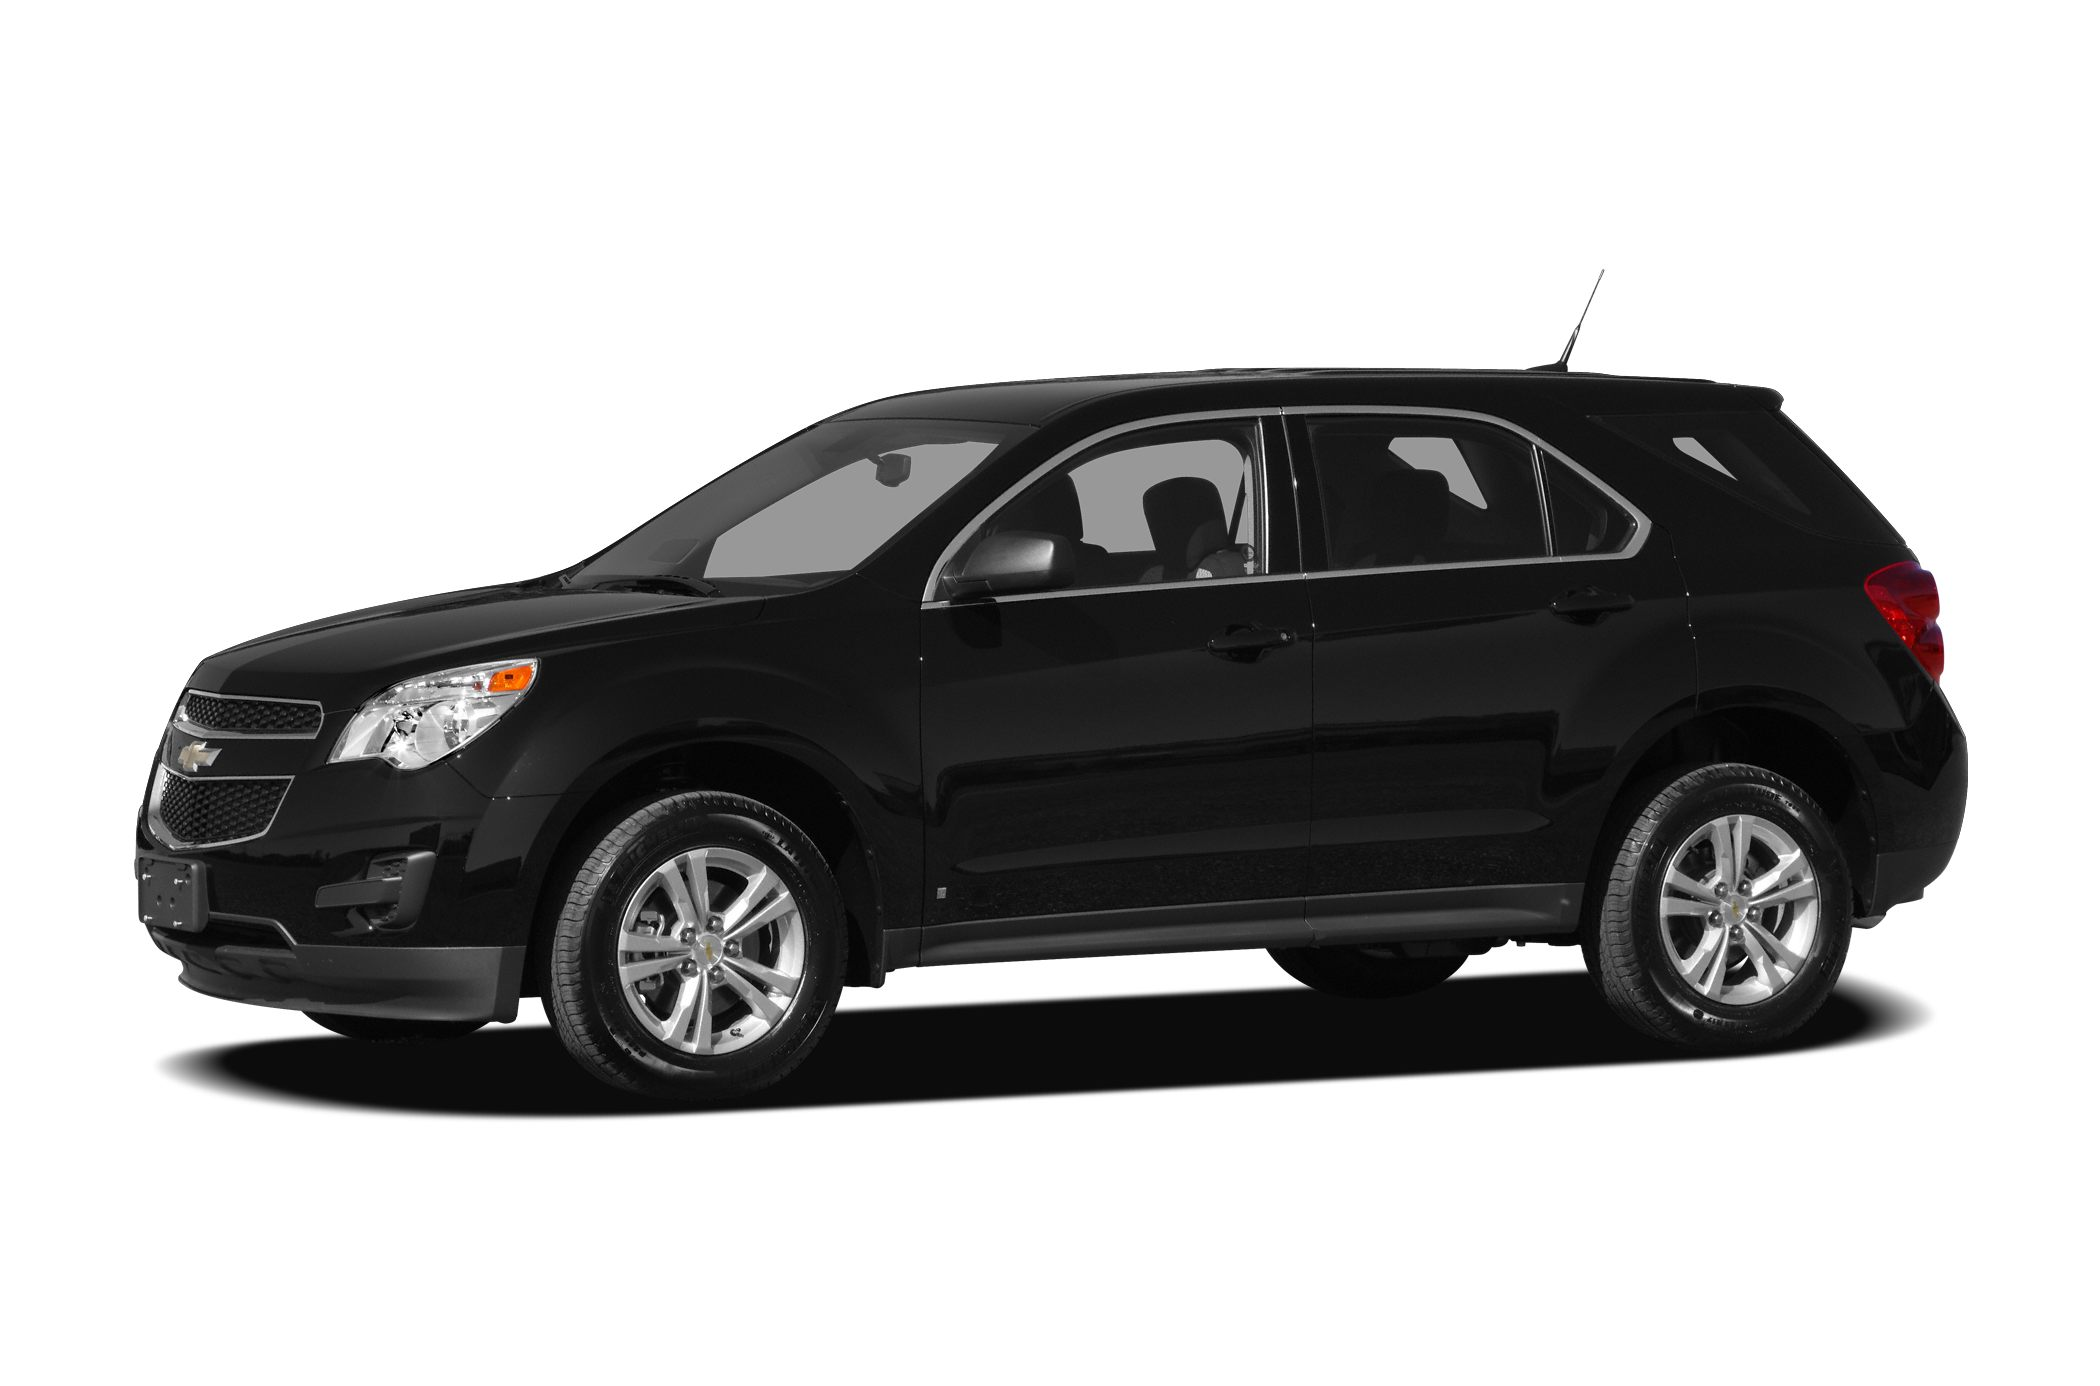 2010 Chevrolet Equinox Information